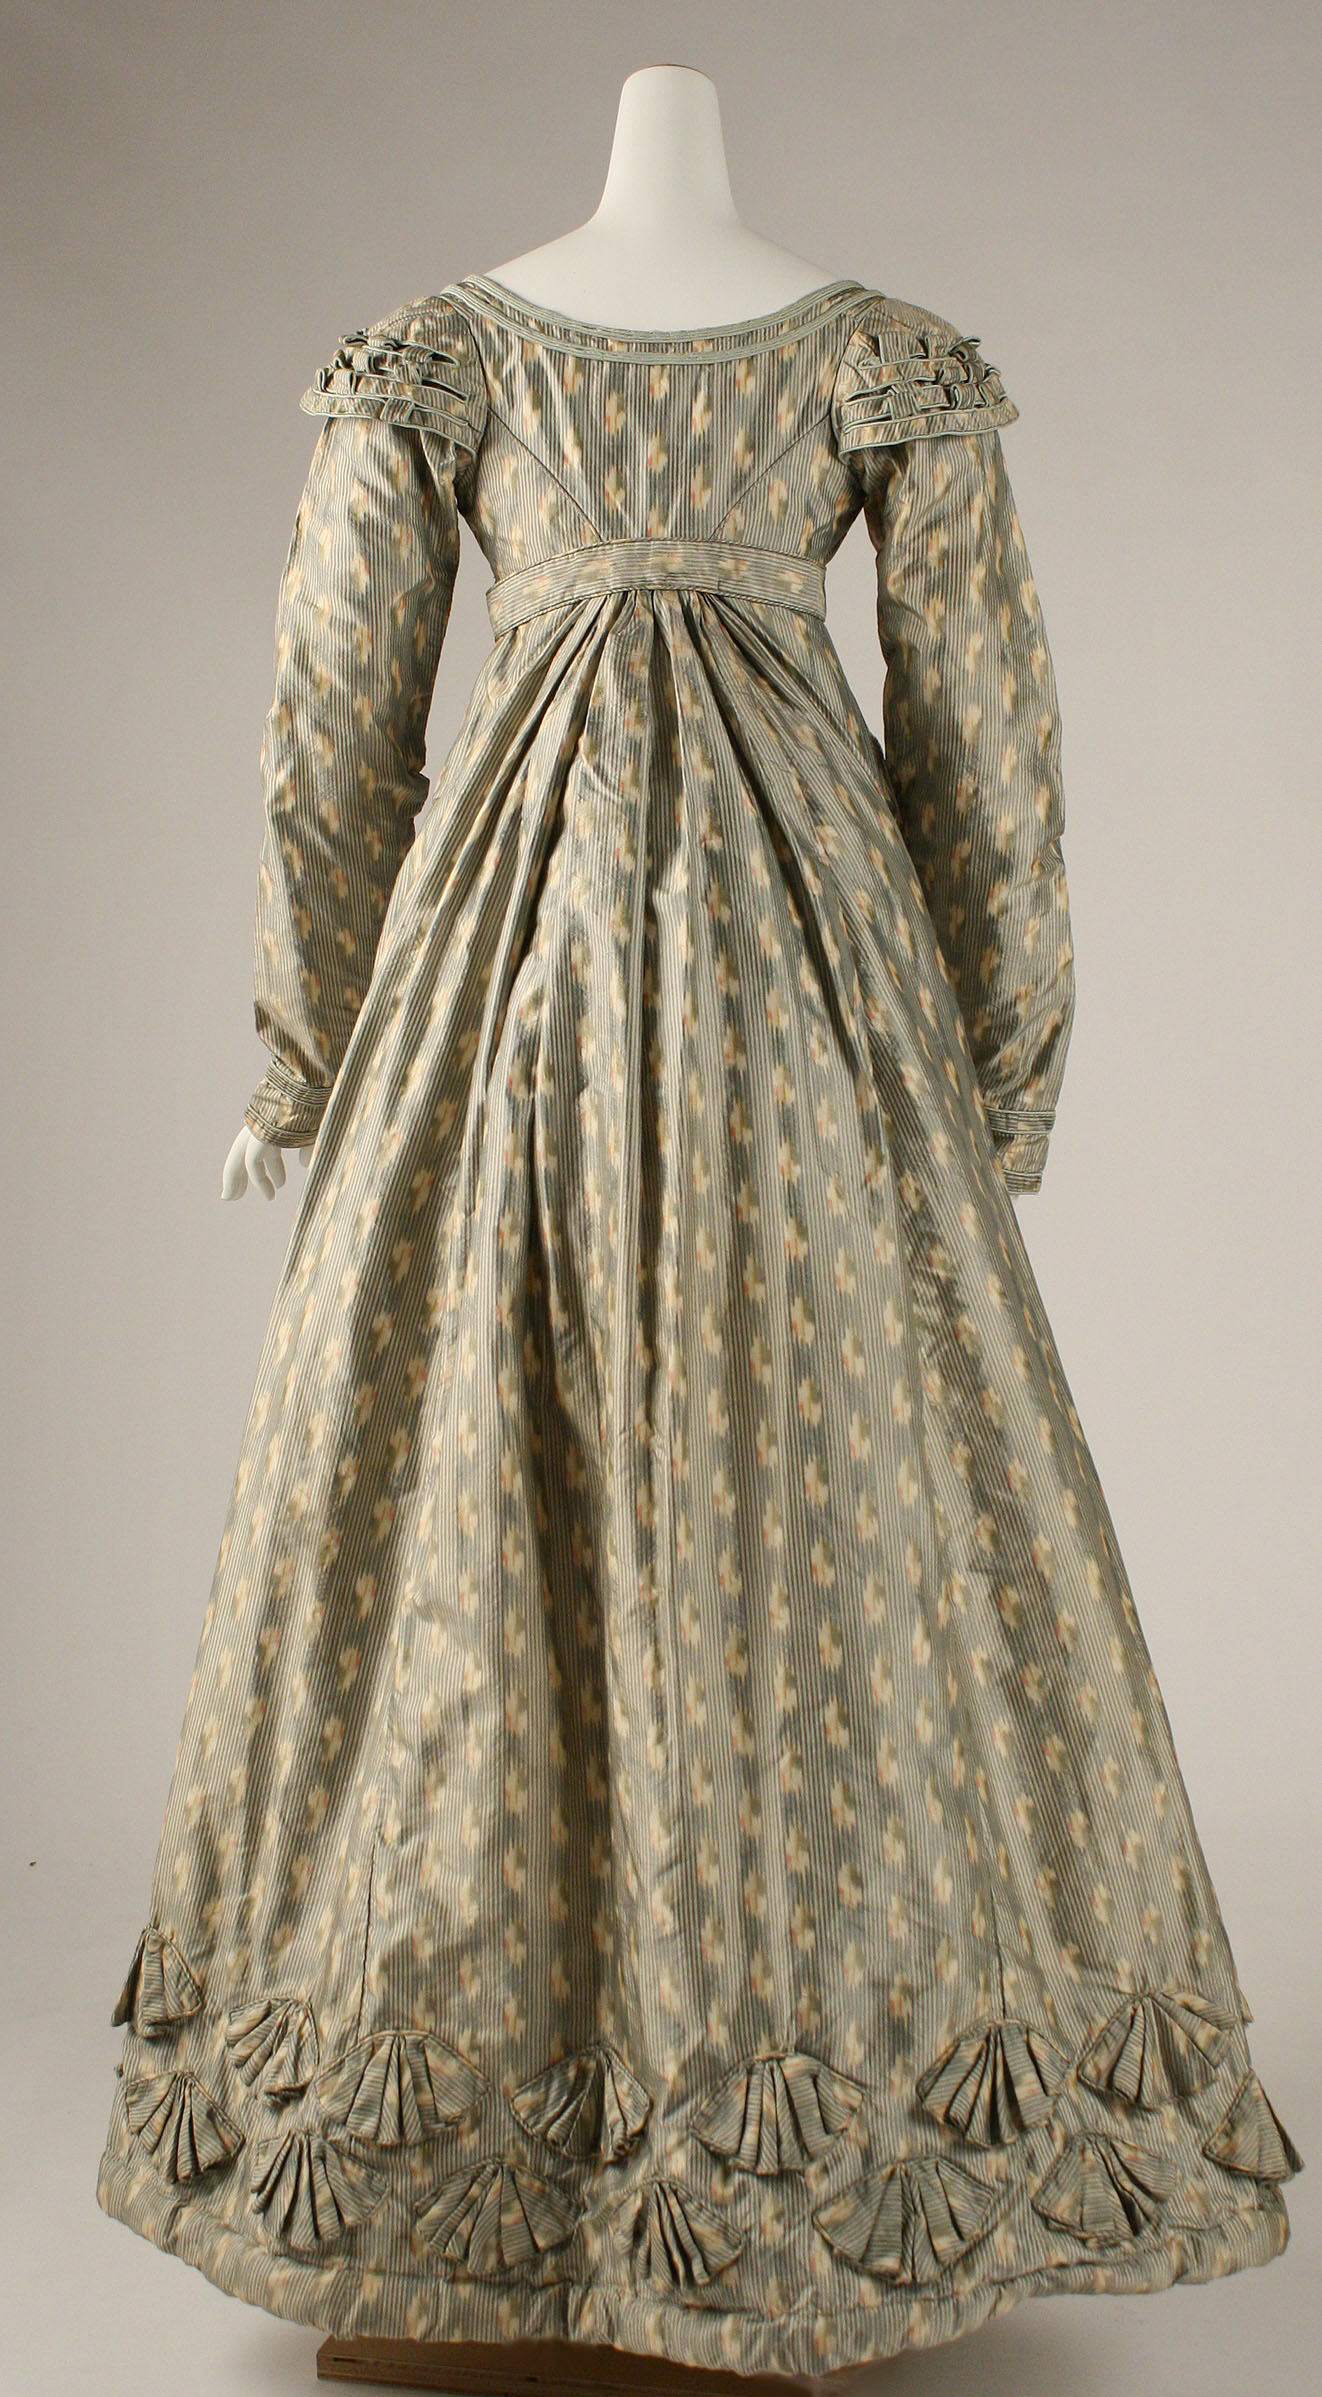 Dress, ca. 1820, British, silk, Metropolitan Museum of Art, 1971.242.1a–e